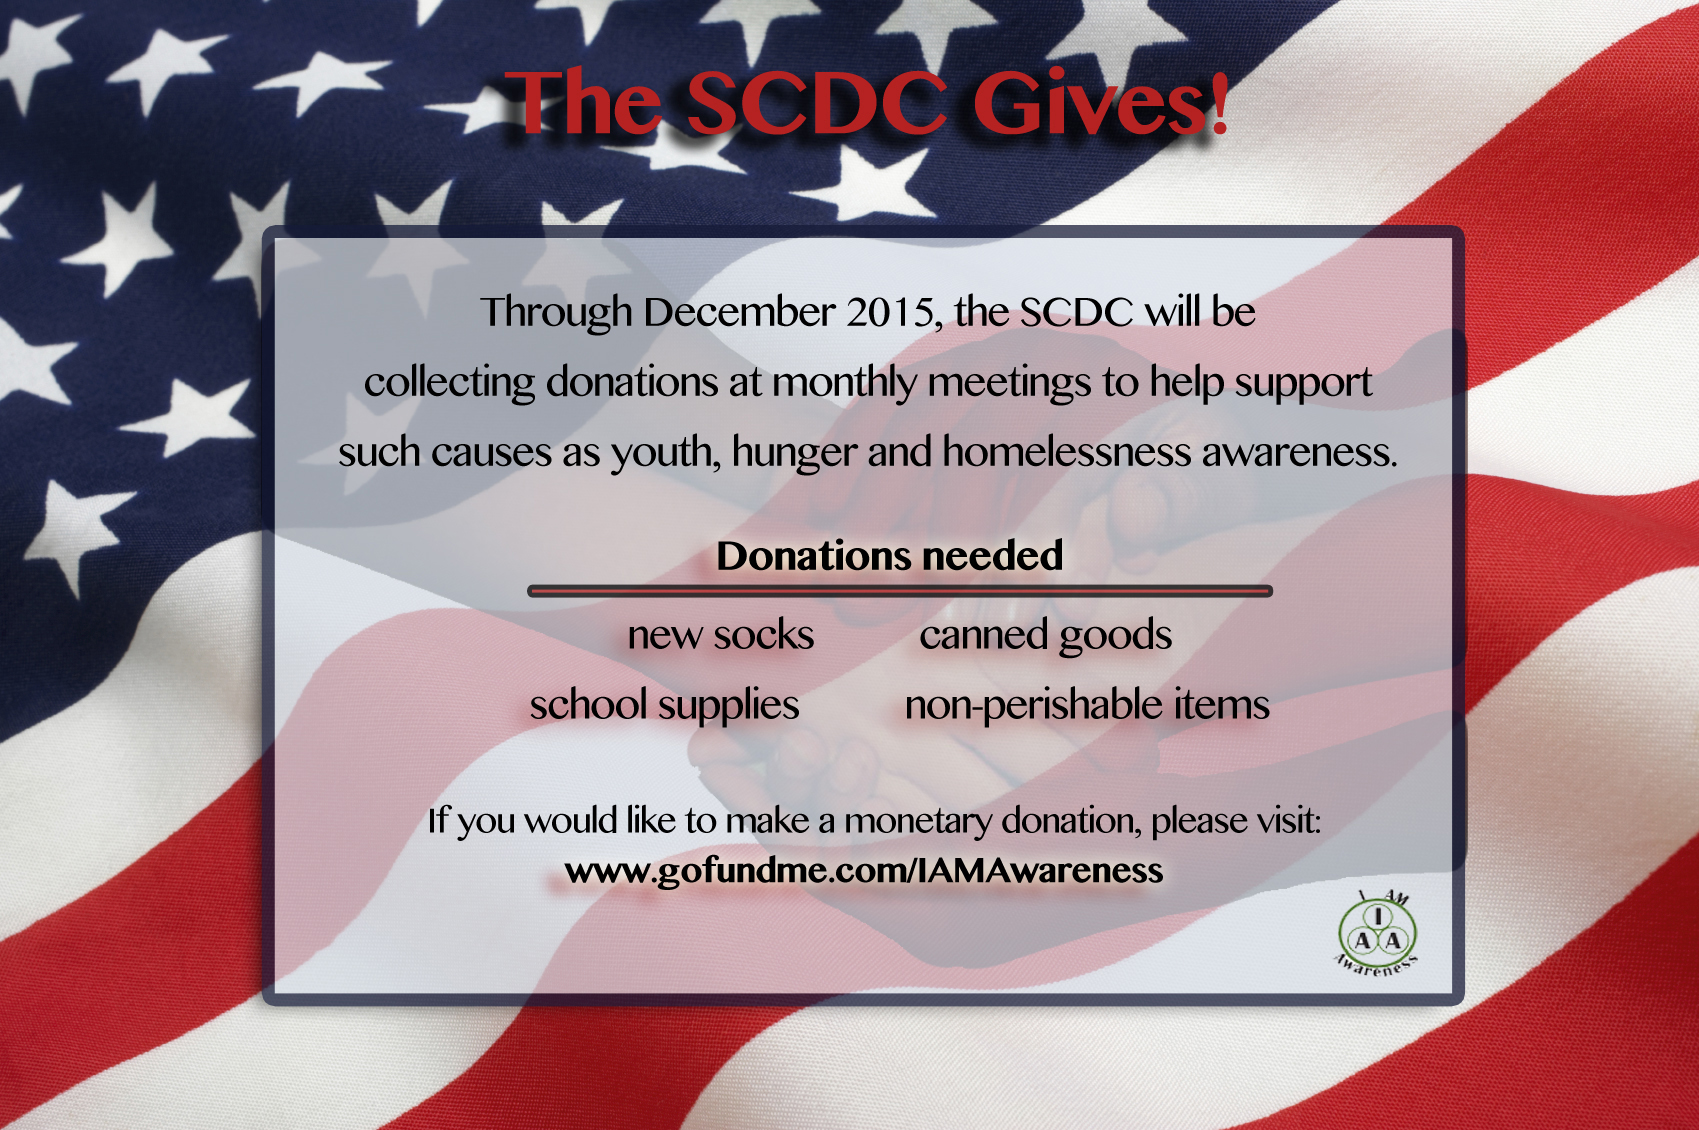 SCDC Gives!